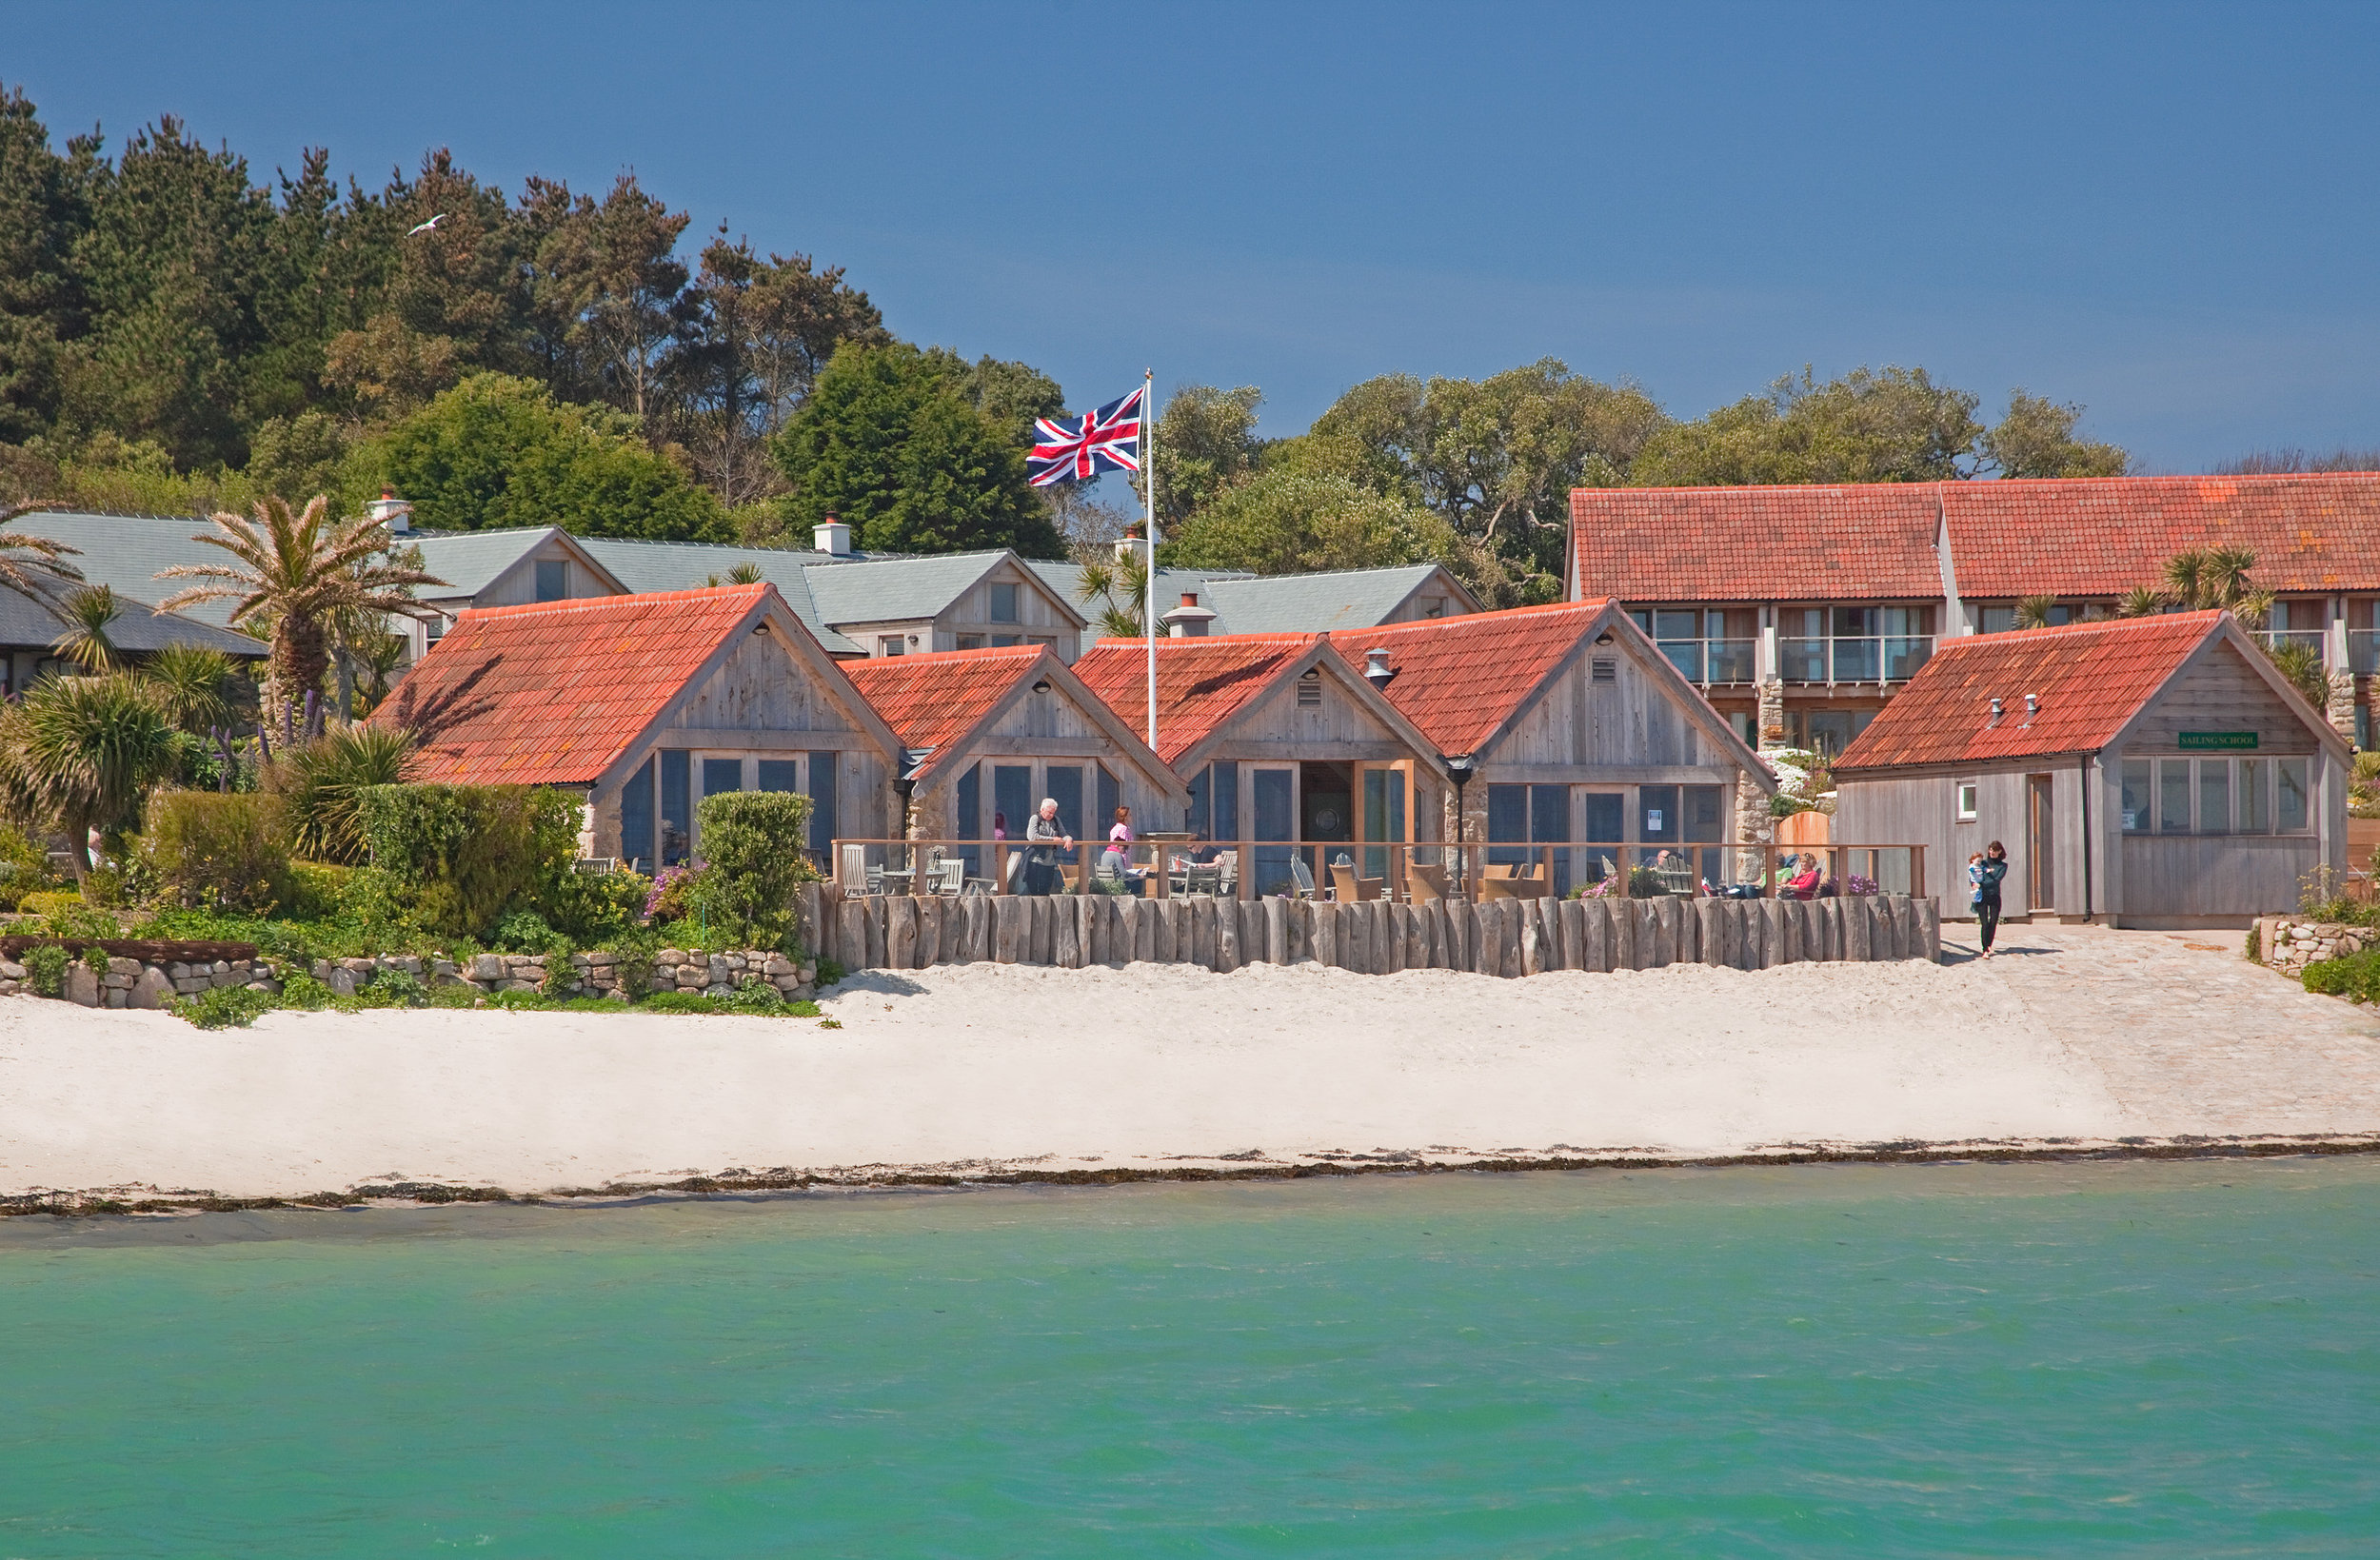 The Ruin Beach Café on Tresco features in the new Michelin Guide Great Britain and Ireland. Image courtesy of Tresco Island.